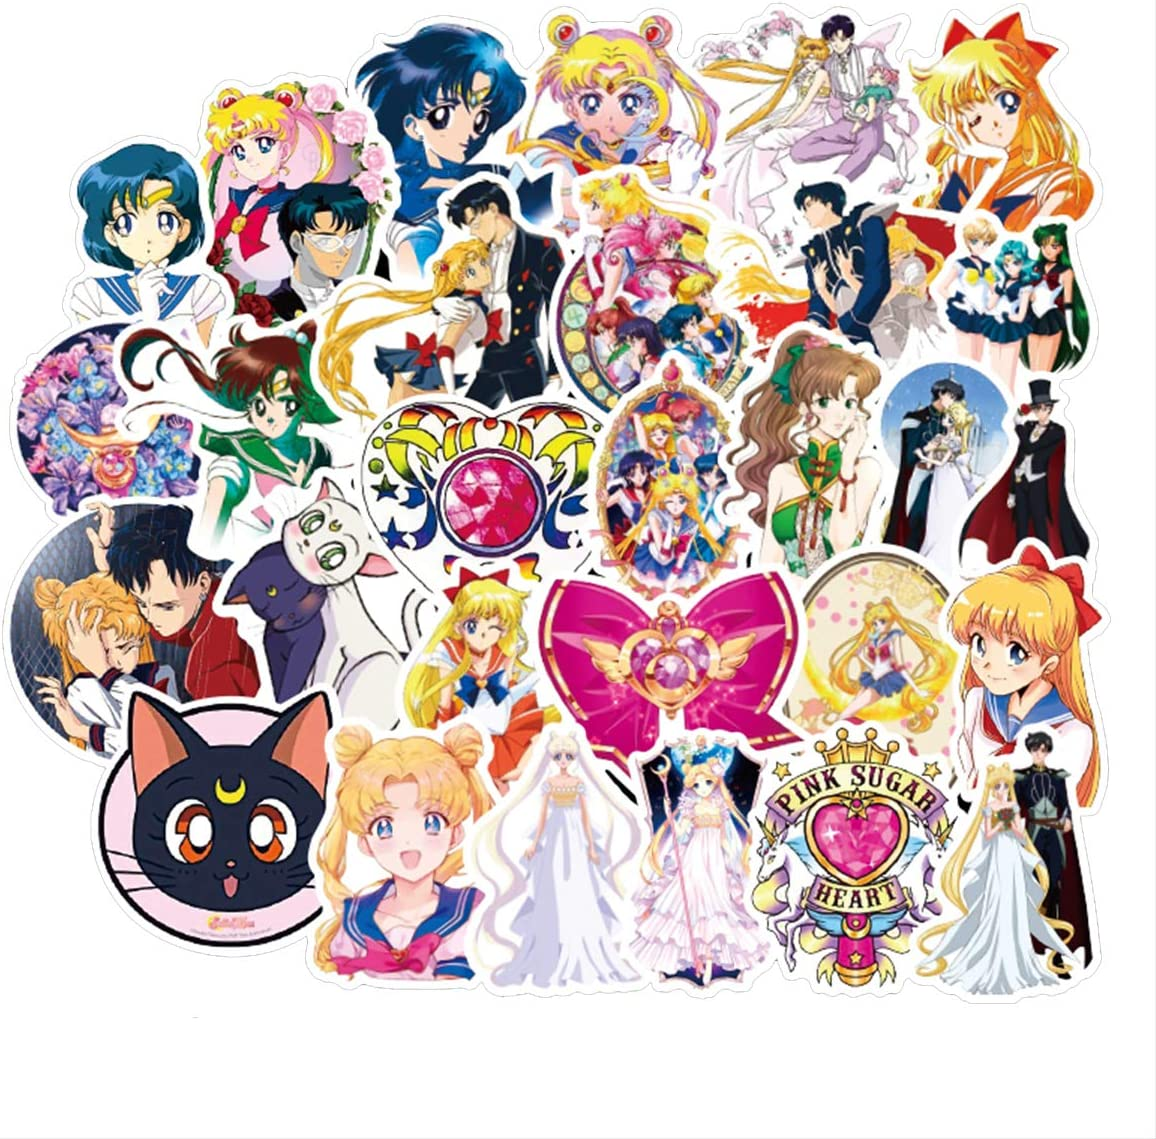 Sailor Moon Pretty Guardian Waterproof Stickers/Decals (50 pcs) of Japanese Anime Cartoon for Laptop Skateboard Snowboard Water Bottle Phone Car(Sailor Moon)